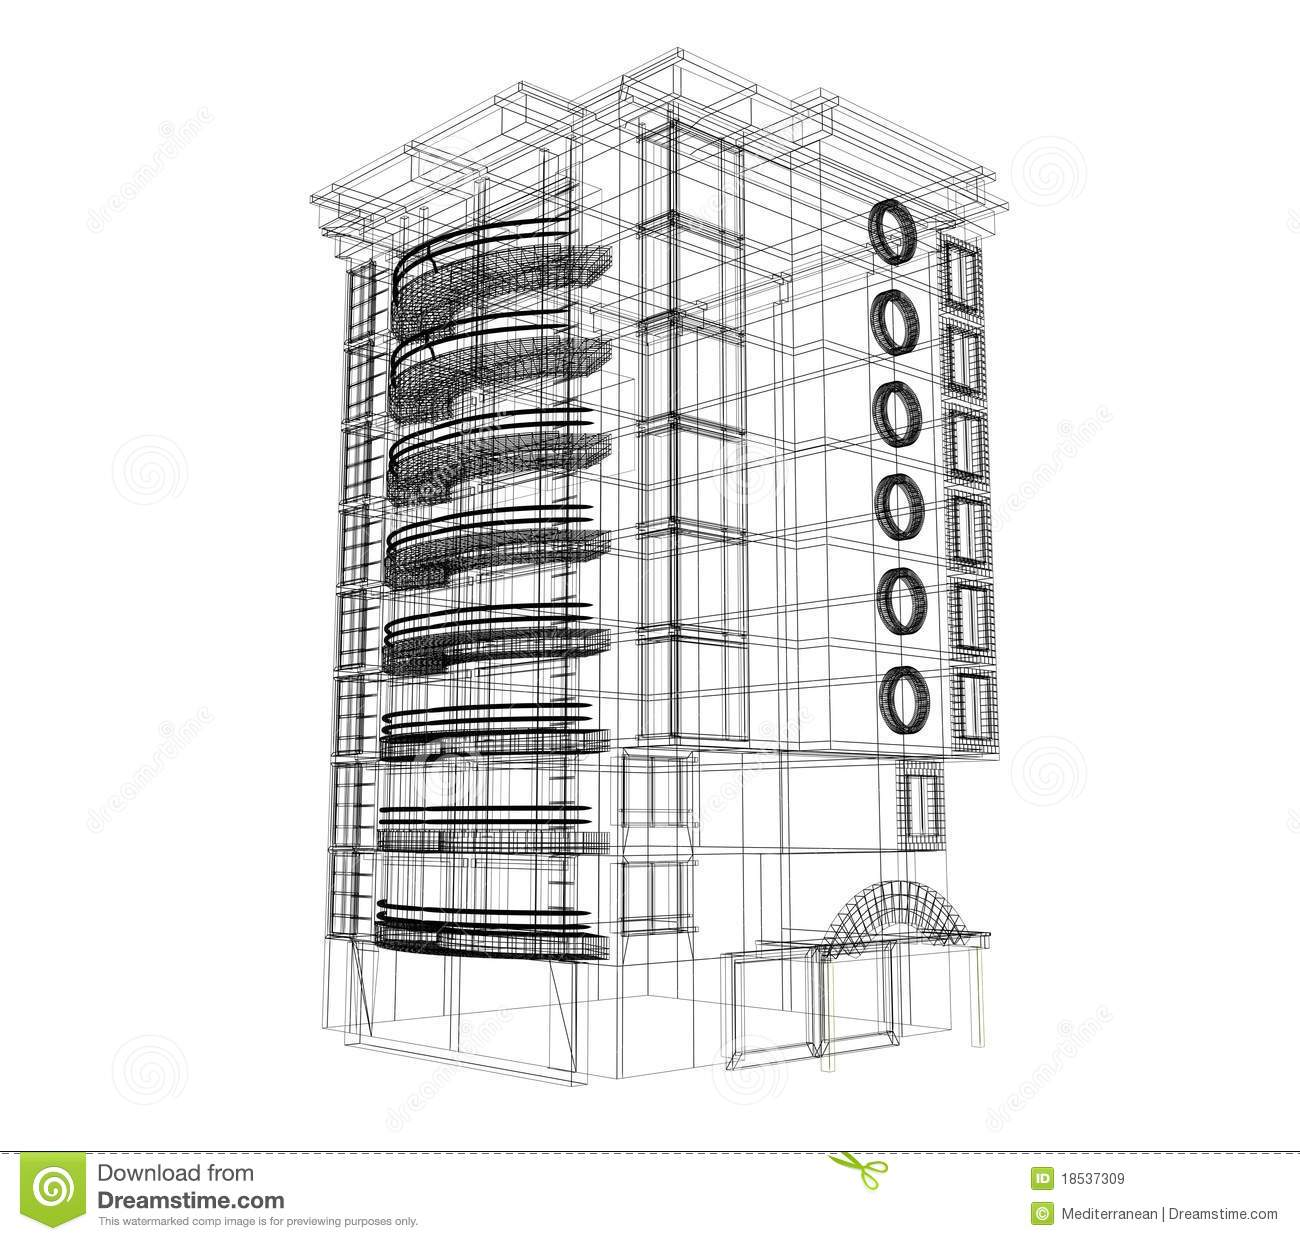 Building plan clipart clipground for Building design plan